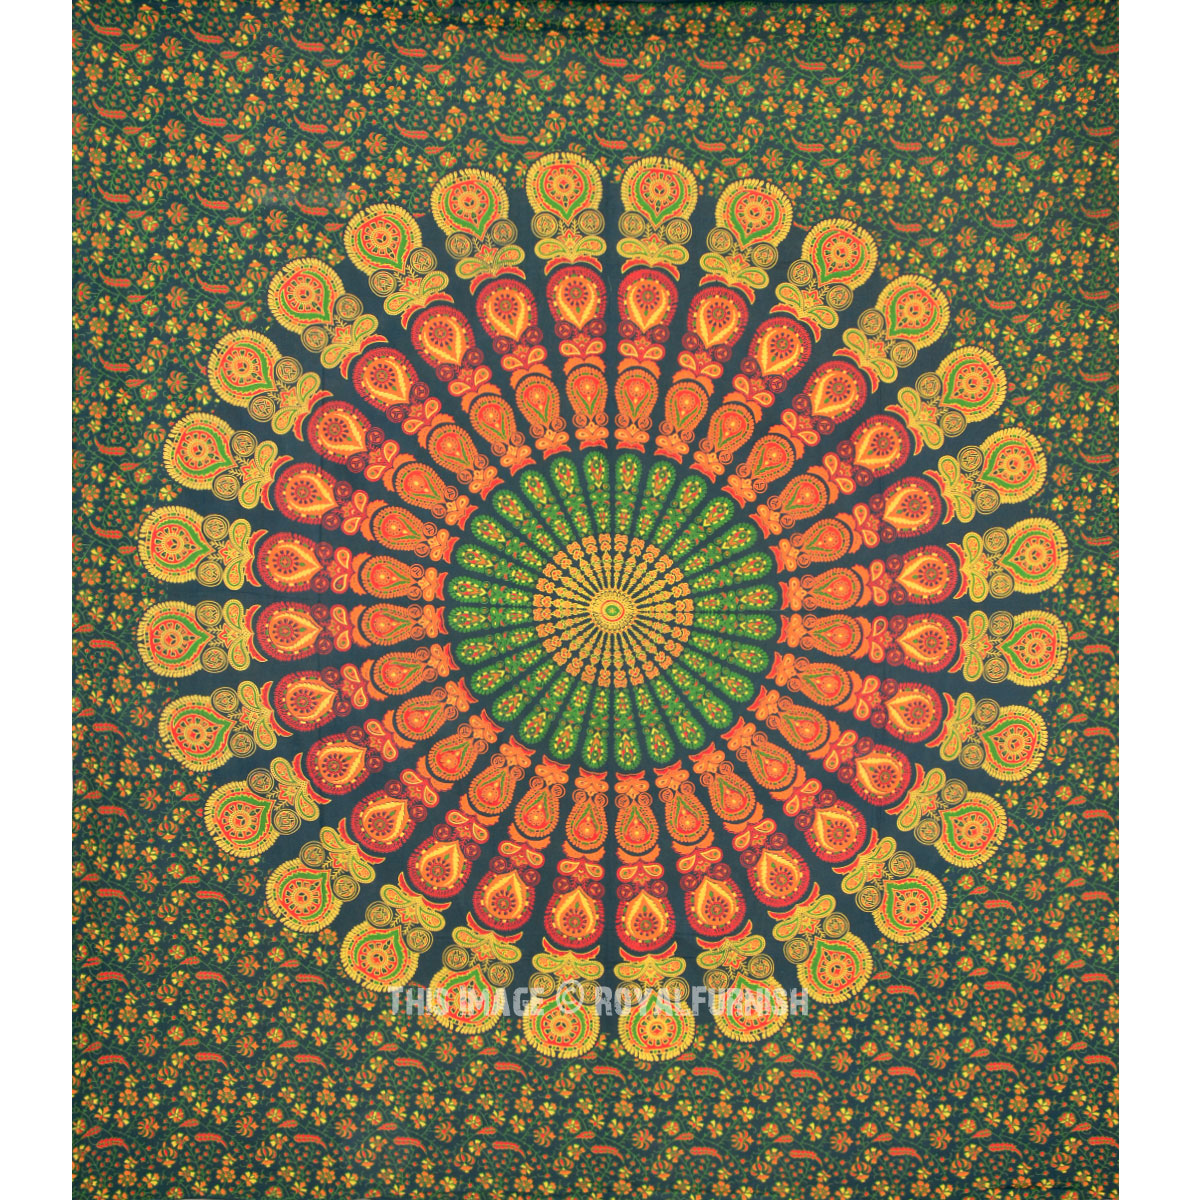 Indian Mandala Hippie Bohemian Tapestry Coverlet - RoyalFurnish.com